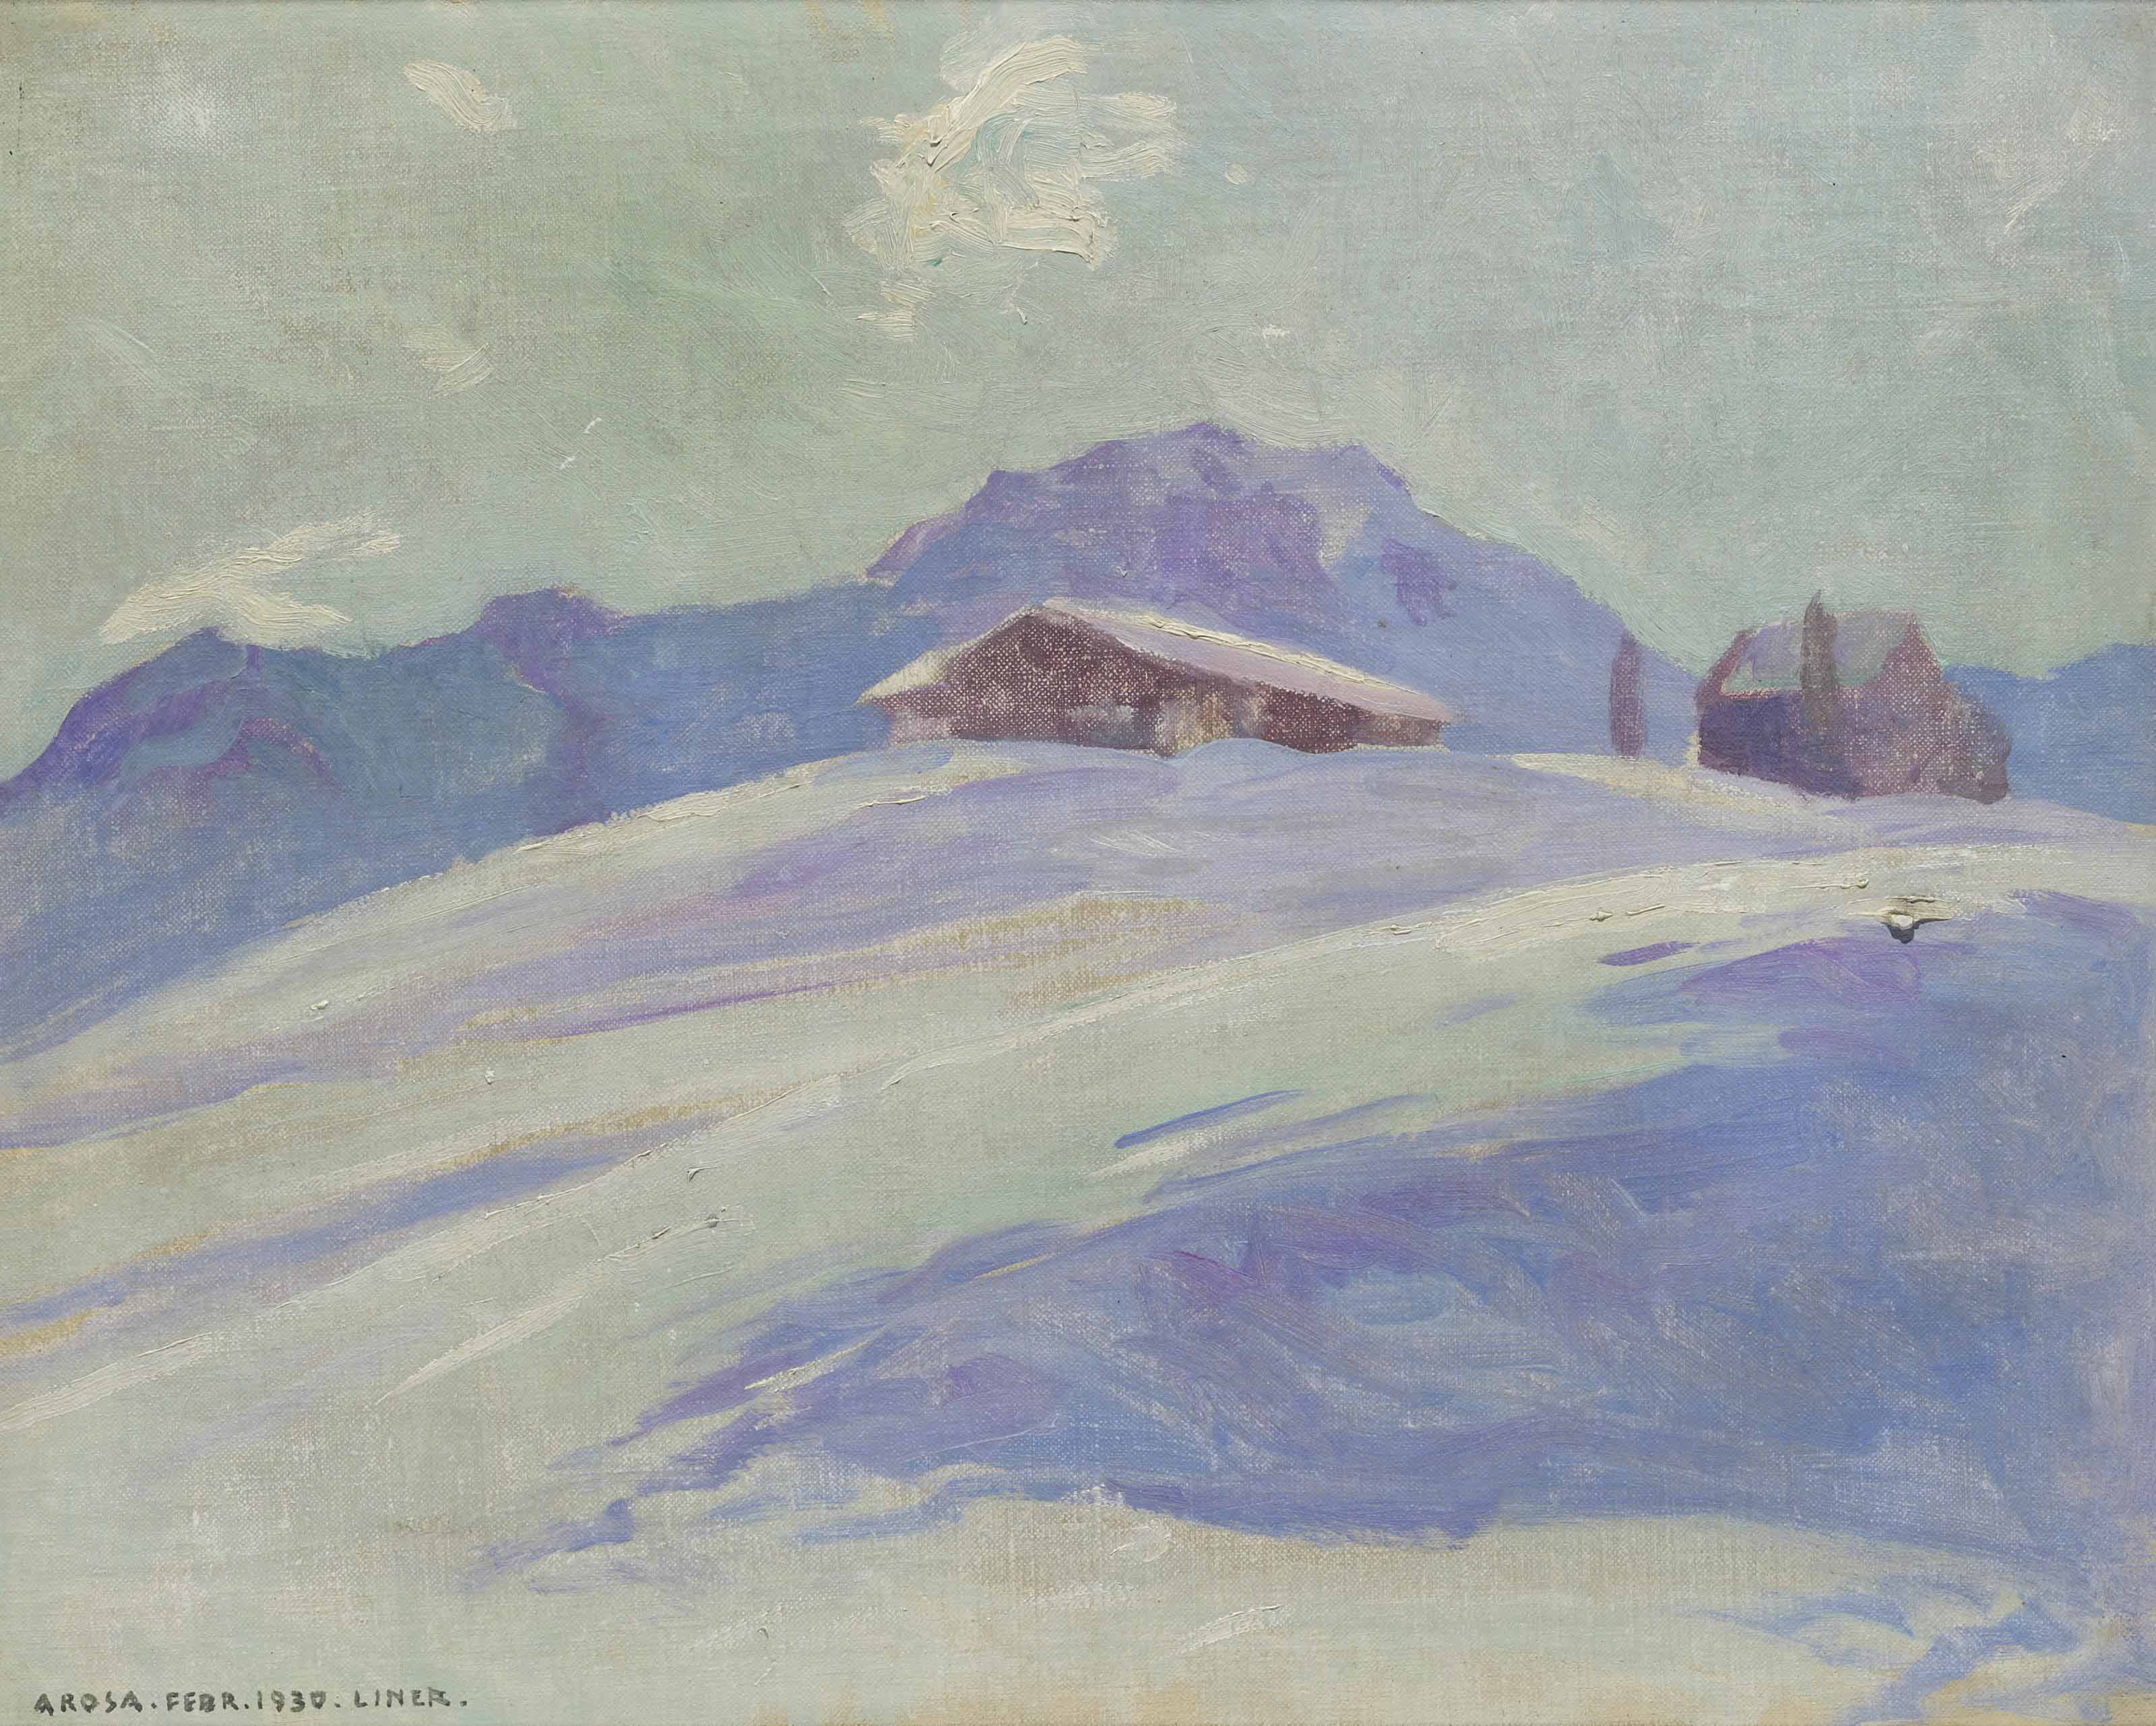 Winterlandschaft Arosa, 1930